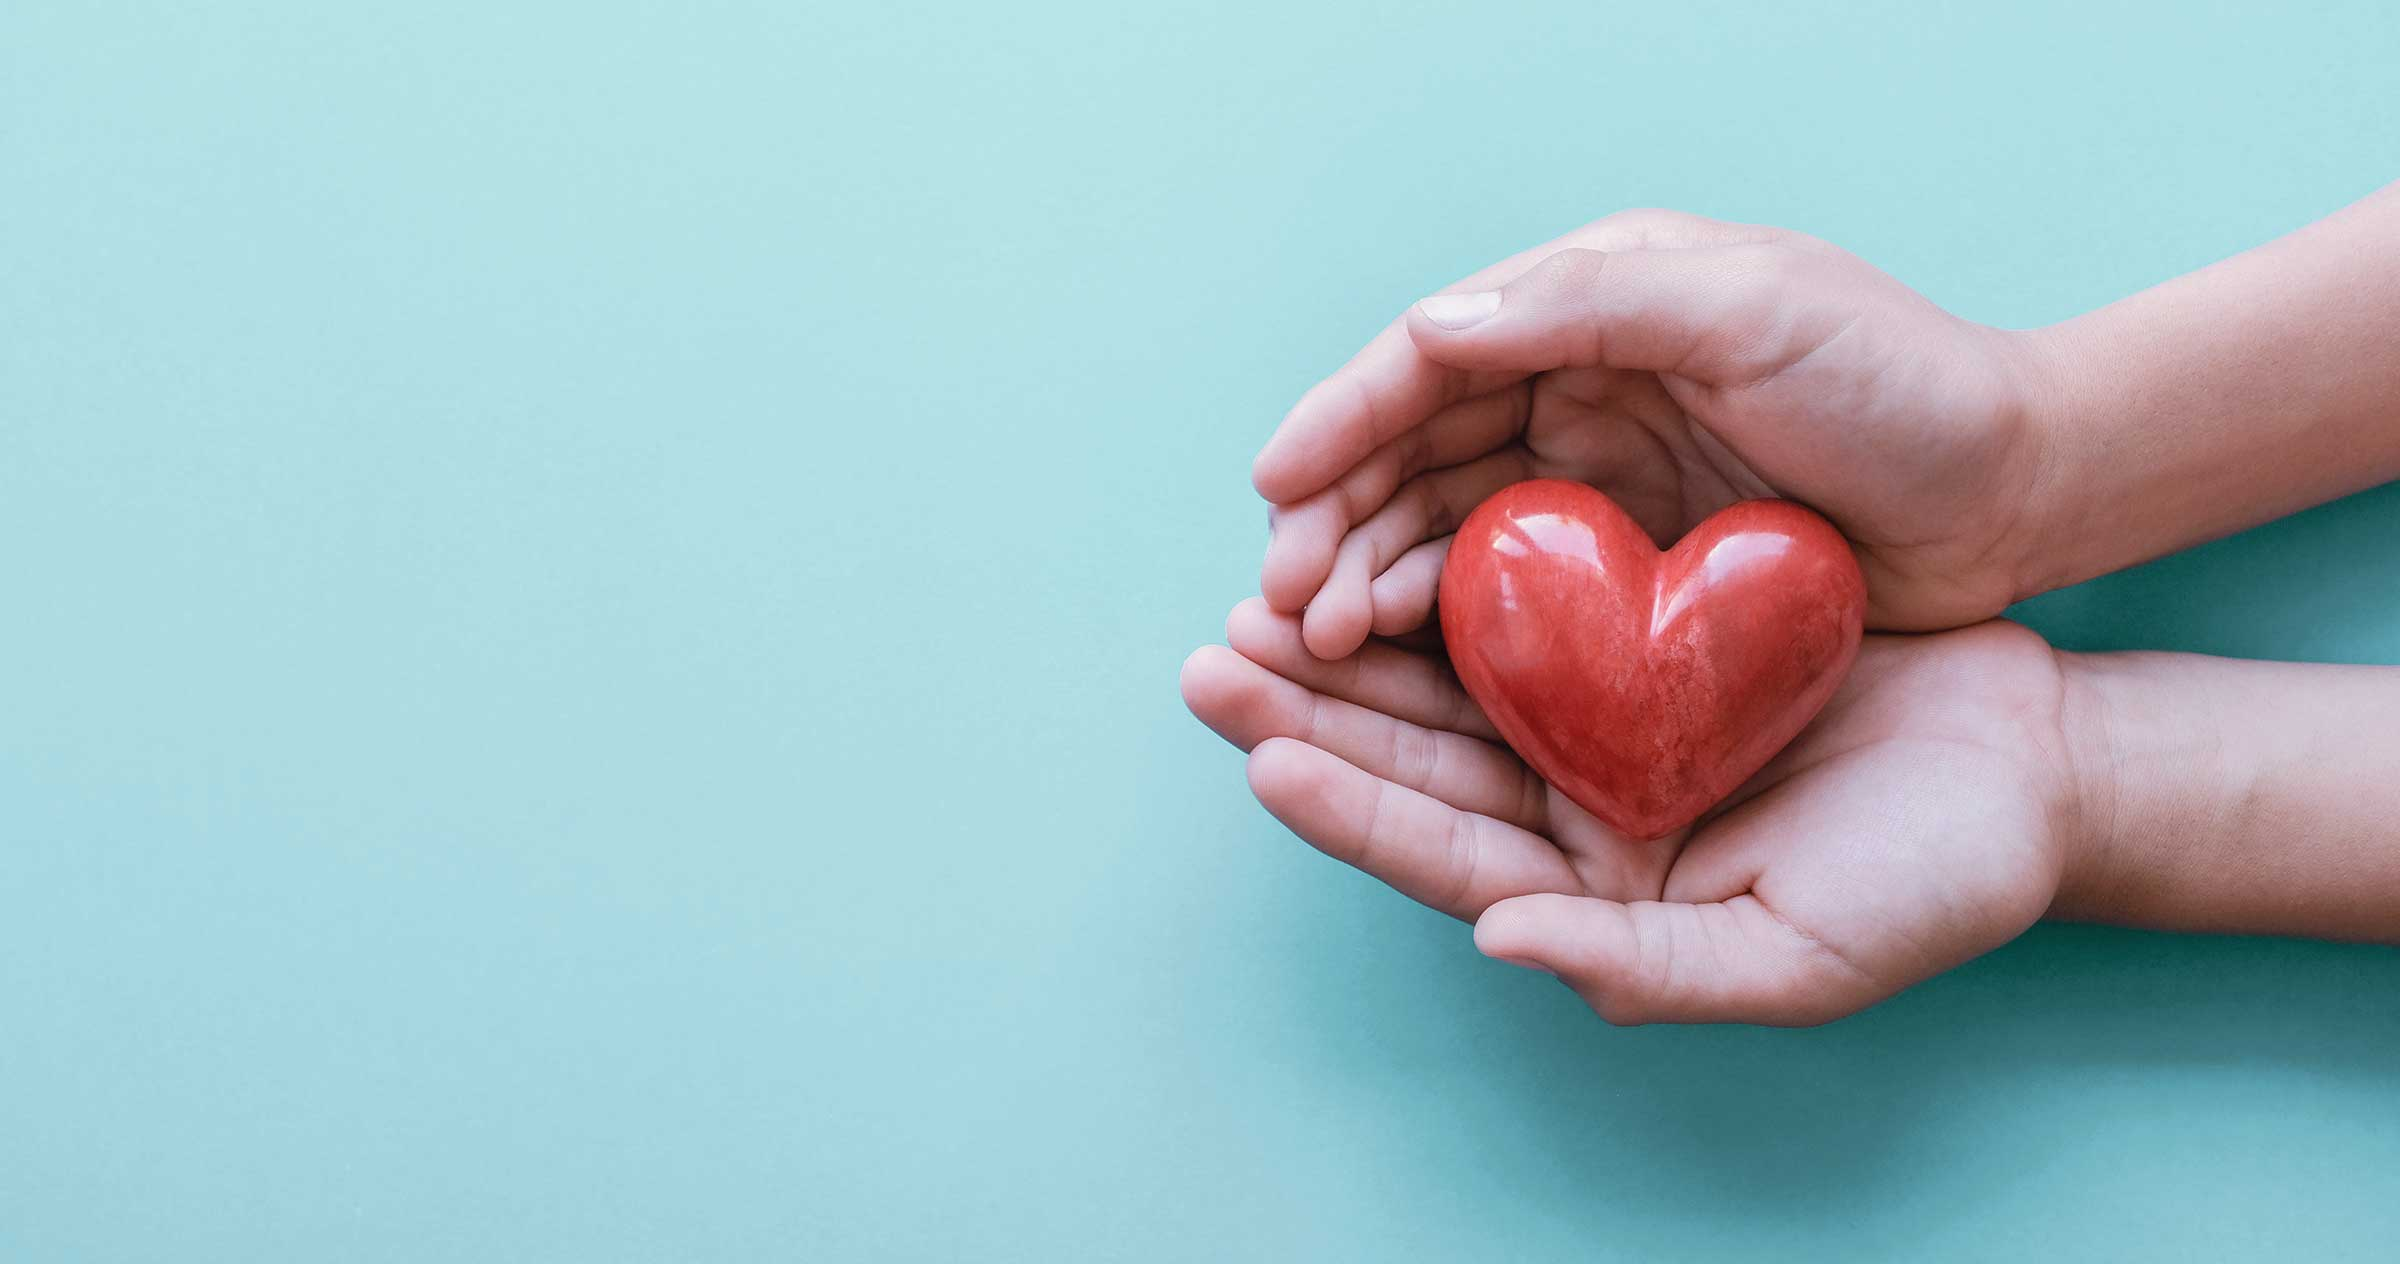 The link between compassion and patient outcomes and why it matters